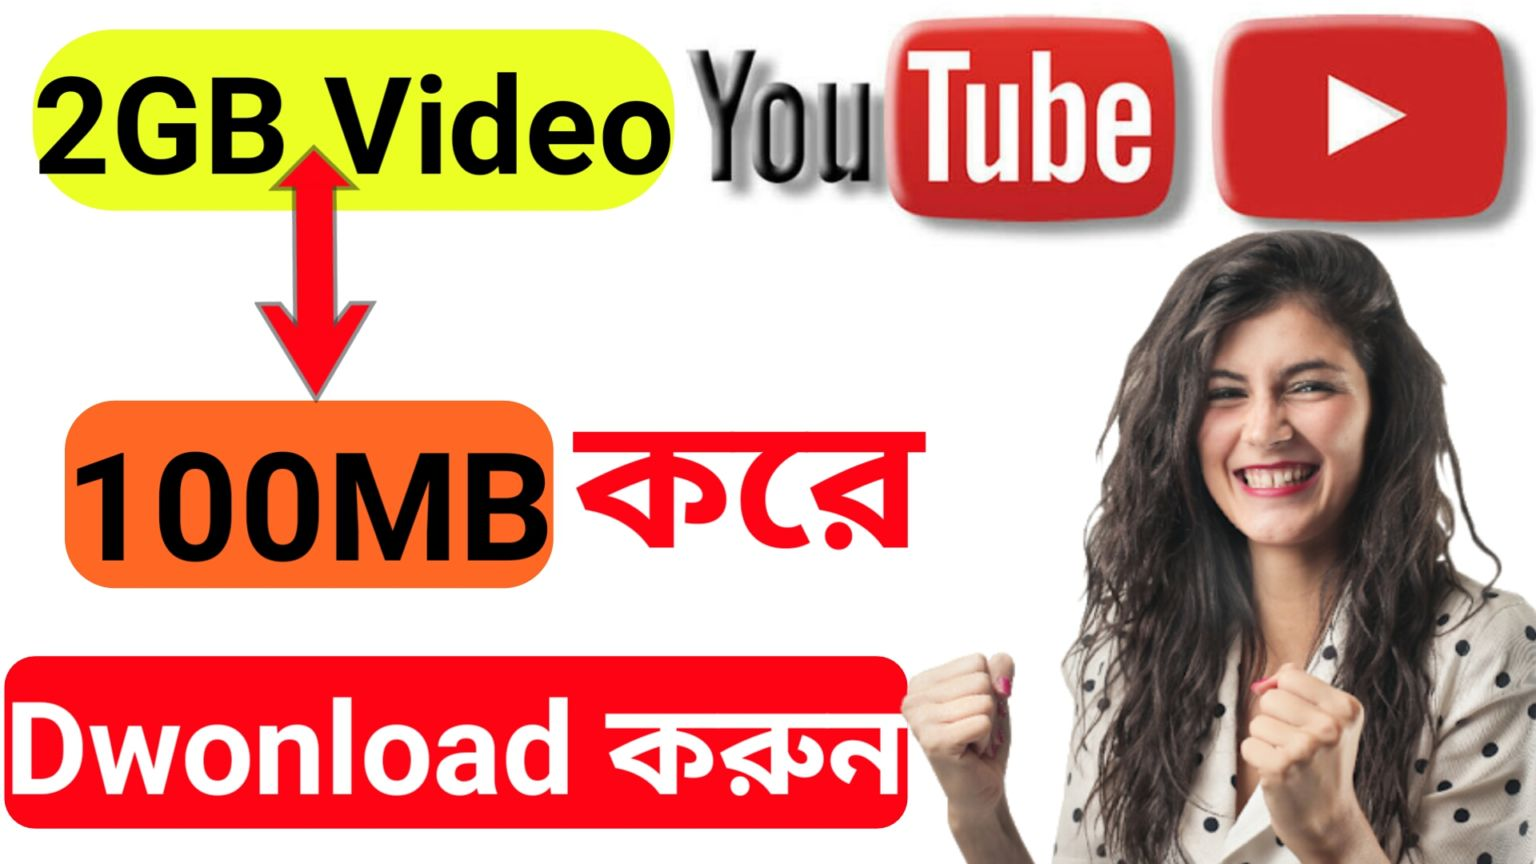 2GB Video কে 100 MB করে Dwonload করুন যে কোনো video,Movies,Natok,video Song